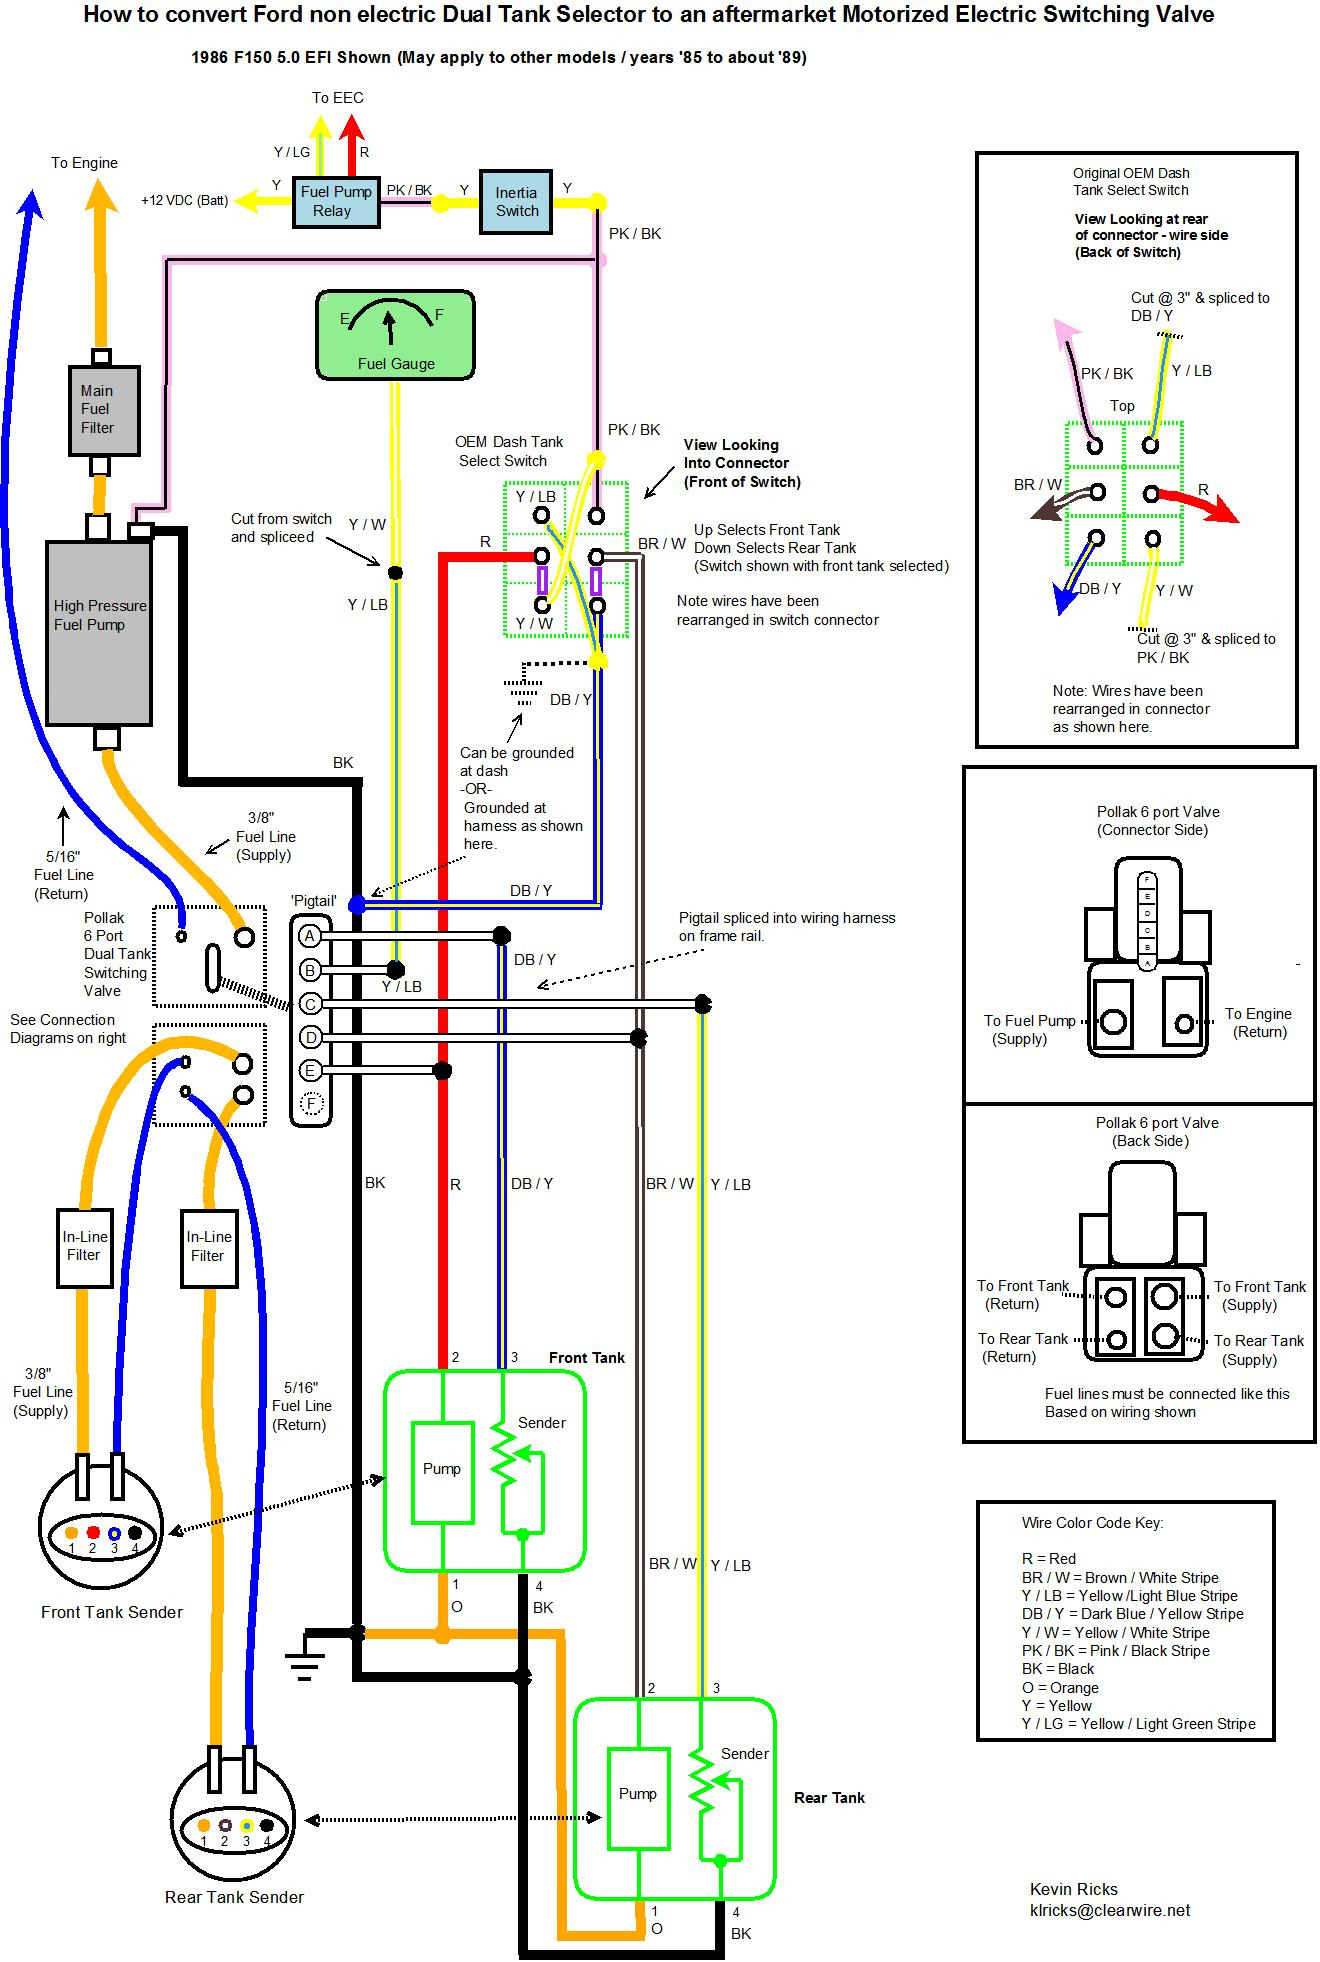 wiring diagram for 1986 ford f250 85 ford f 150 wiring diagram e1 wiring diagram  85 ford f 150 wiring diagram e1